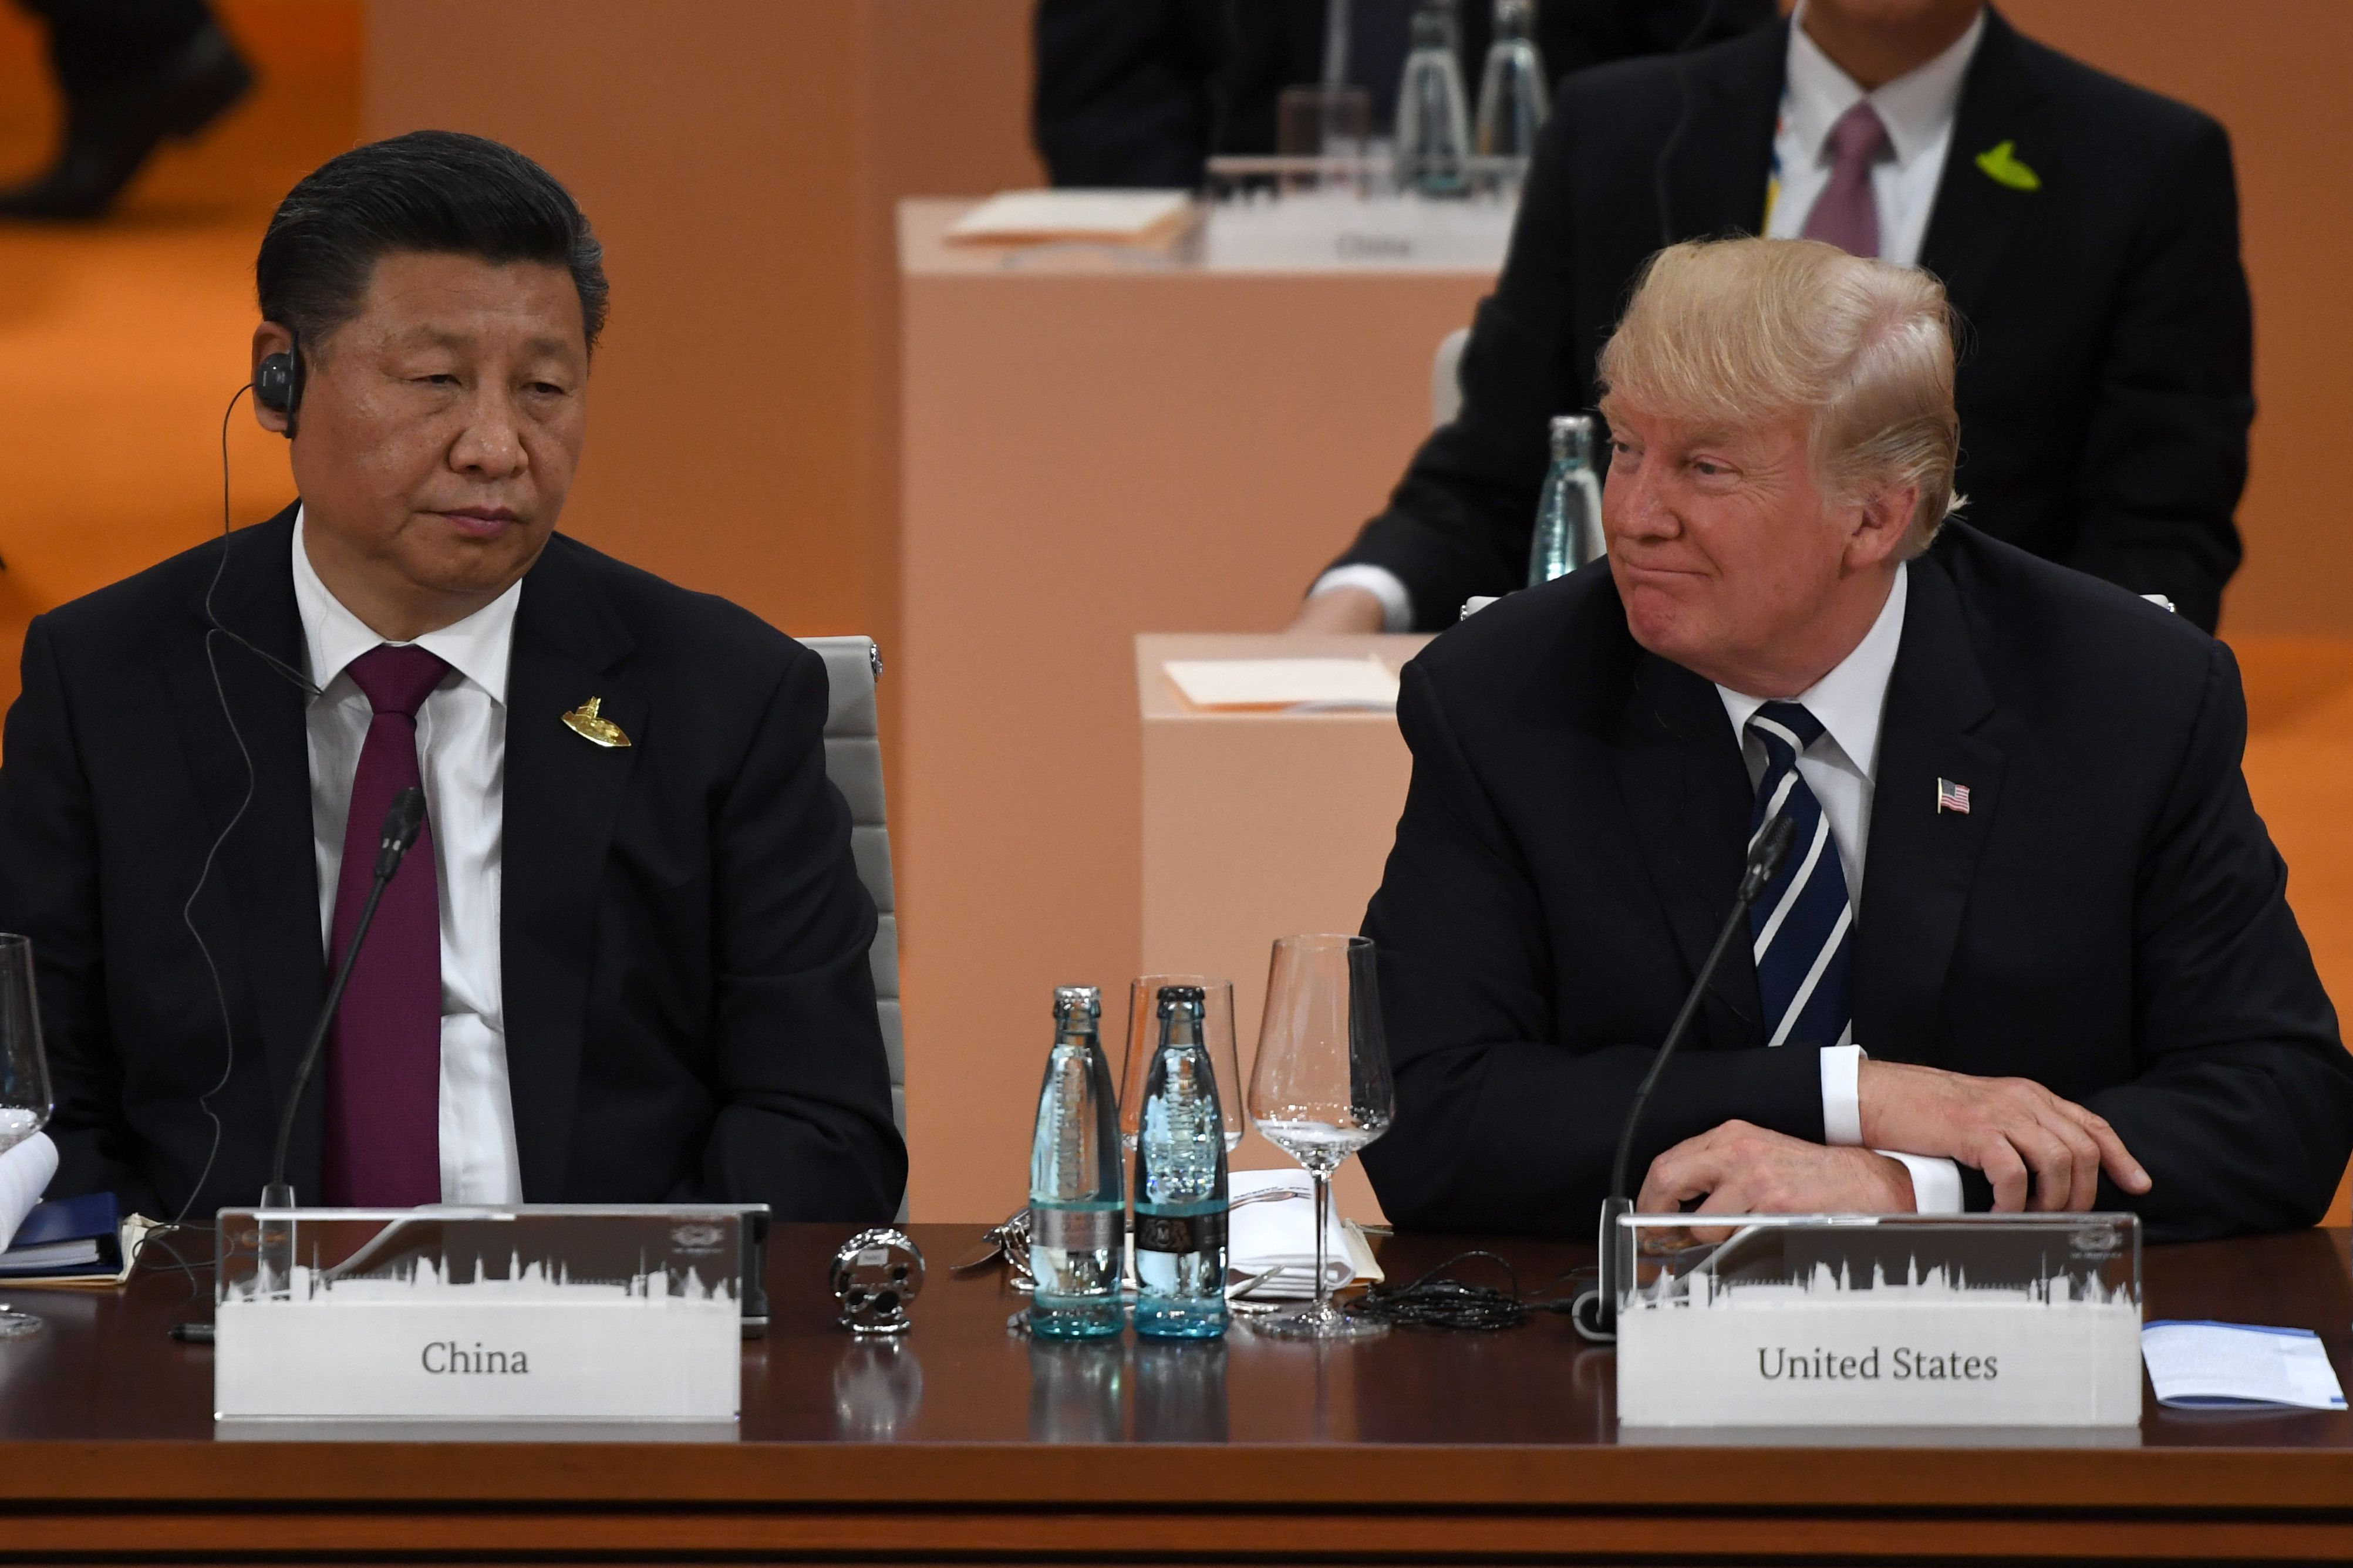 """Xi Jinping and President Trump sit next to each other at a table with placards saying """"China"""" and """"United States"""" in front of them."""